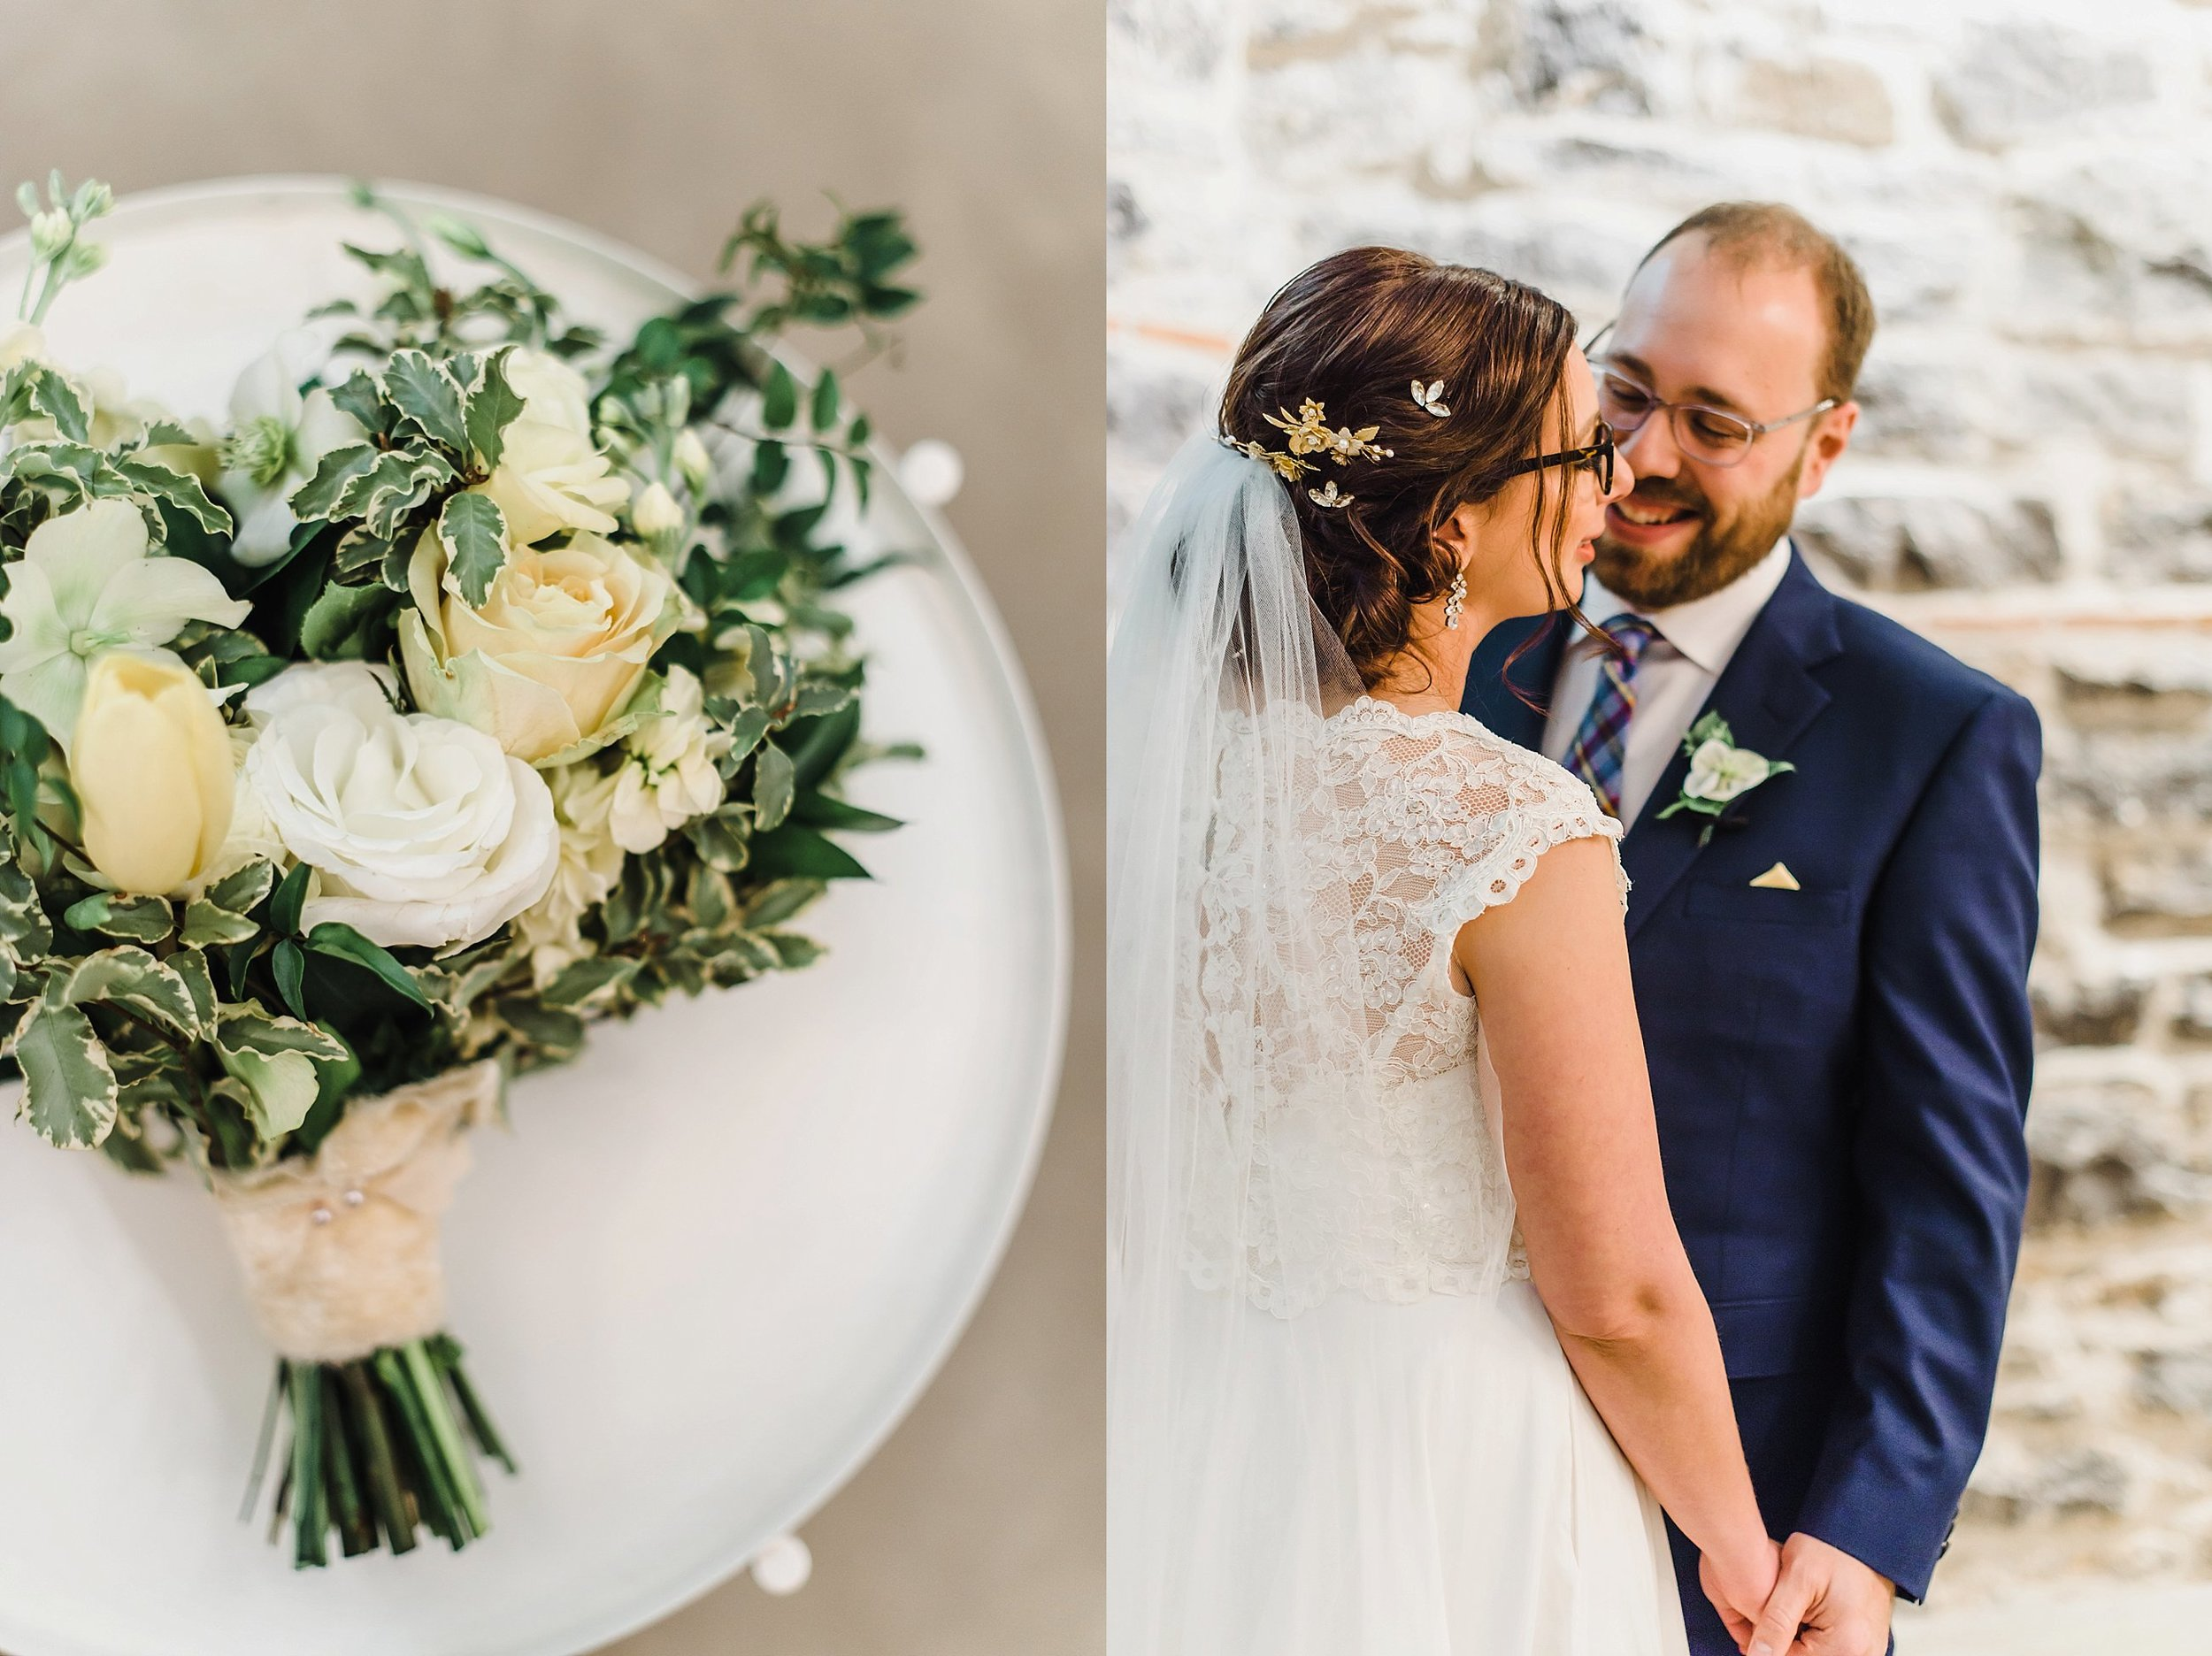 light airy indie fine art ottawa wedding photographer | Ali and Batoul Photography_0045.jpg